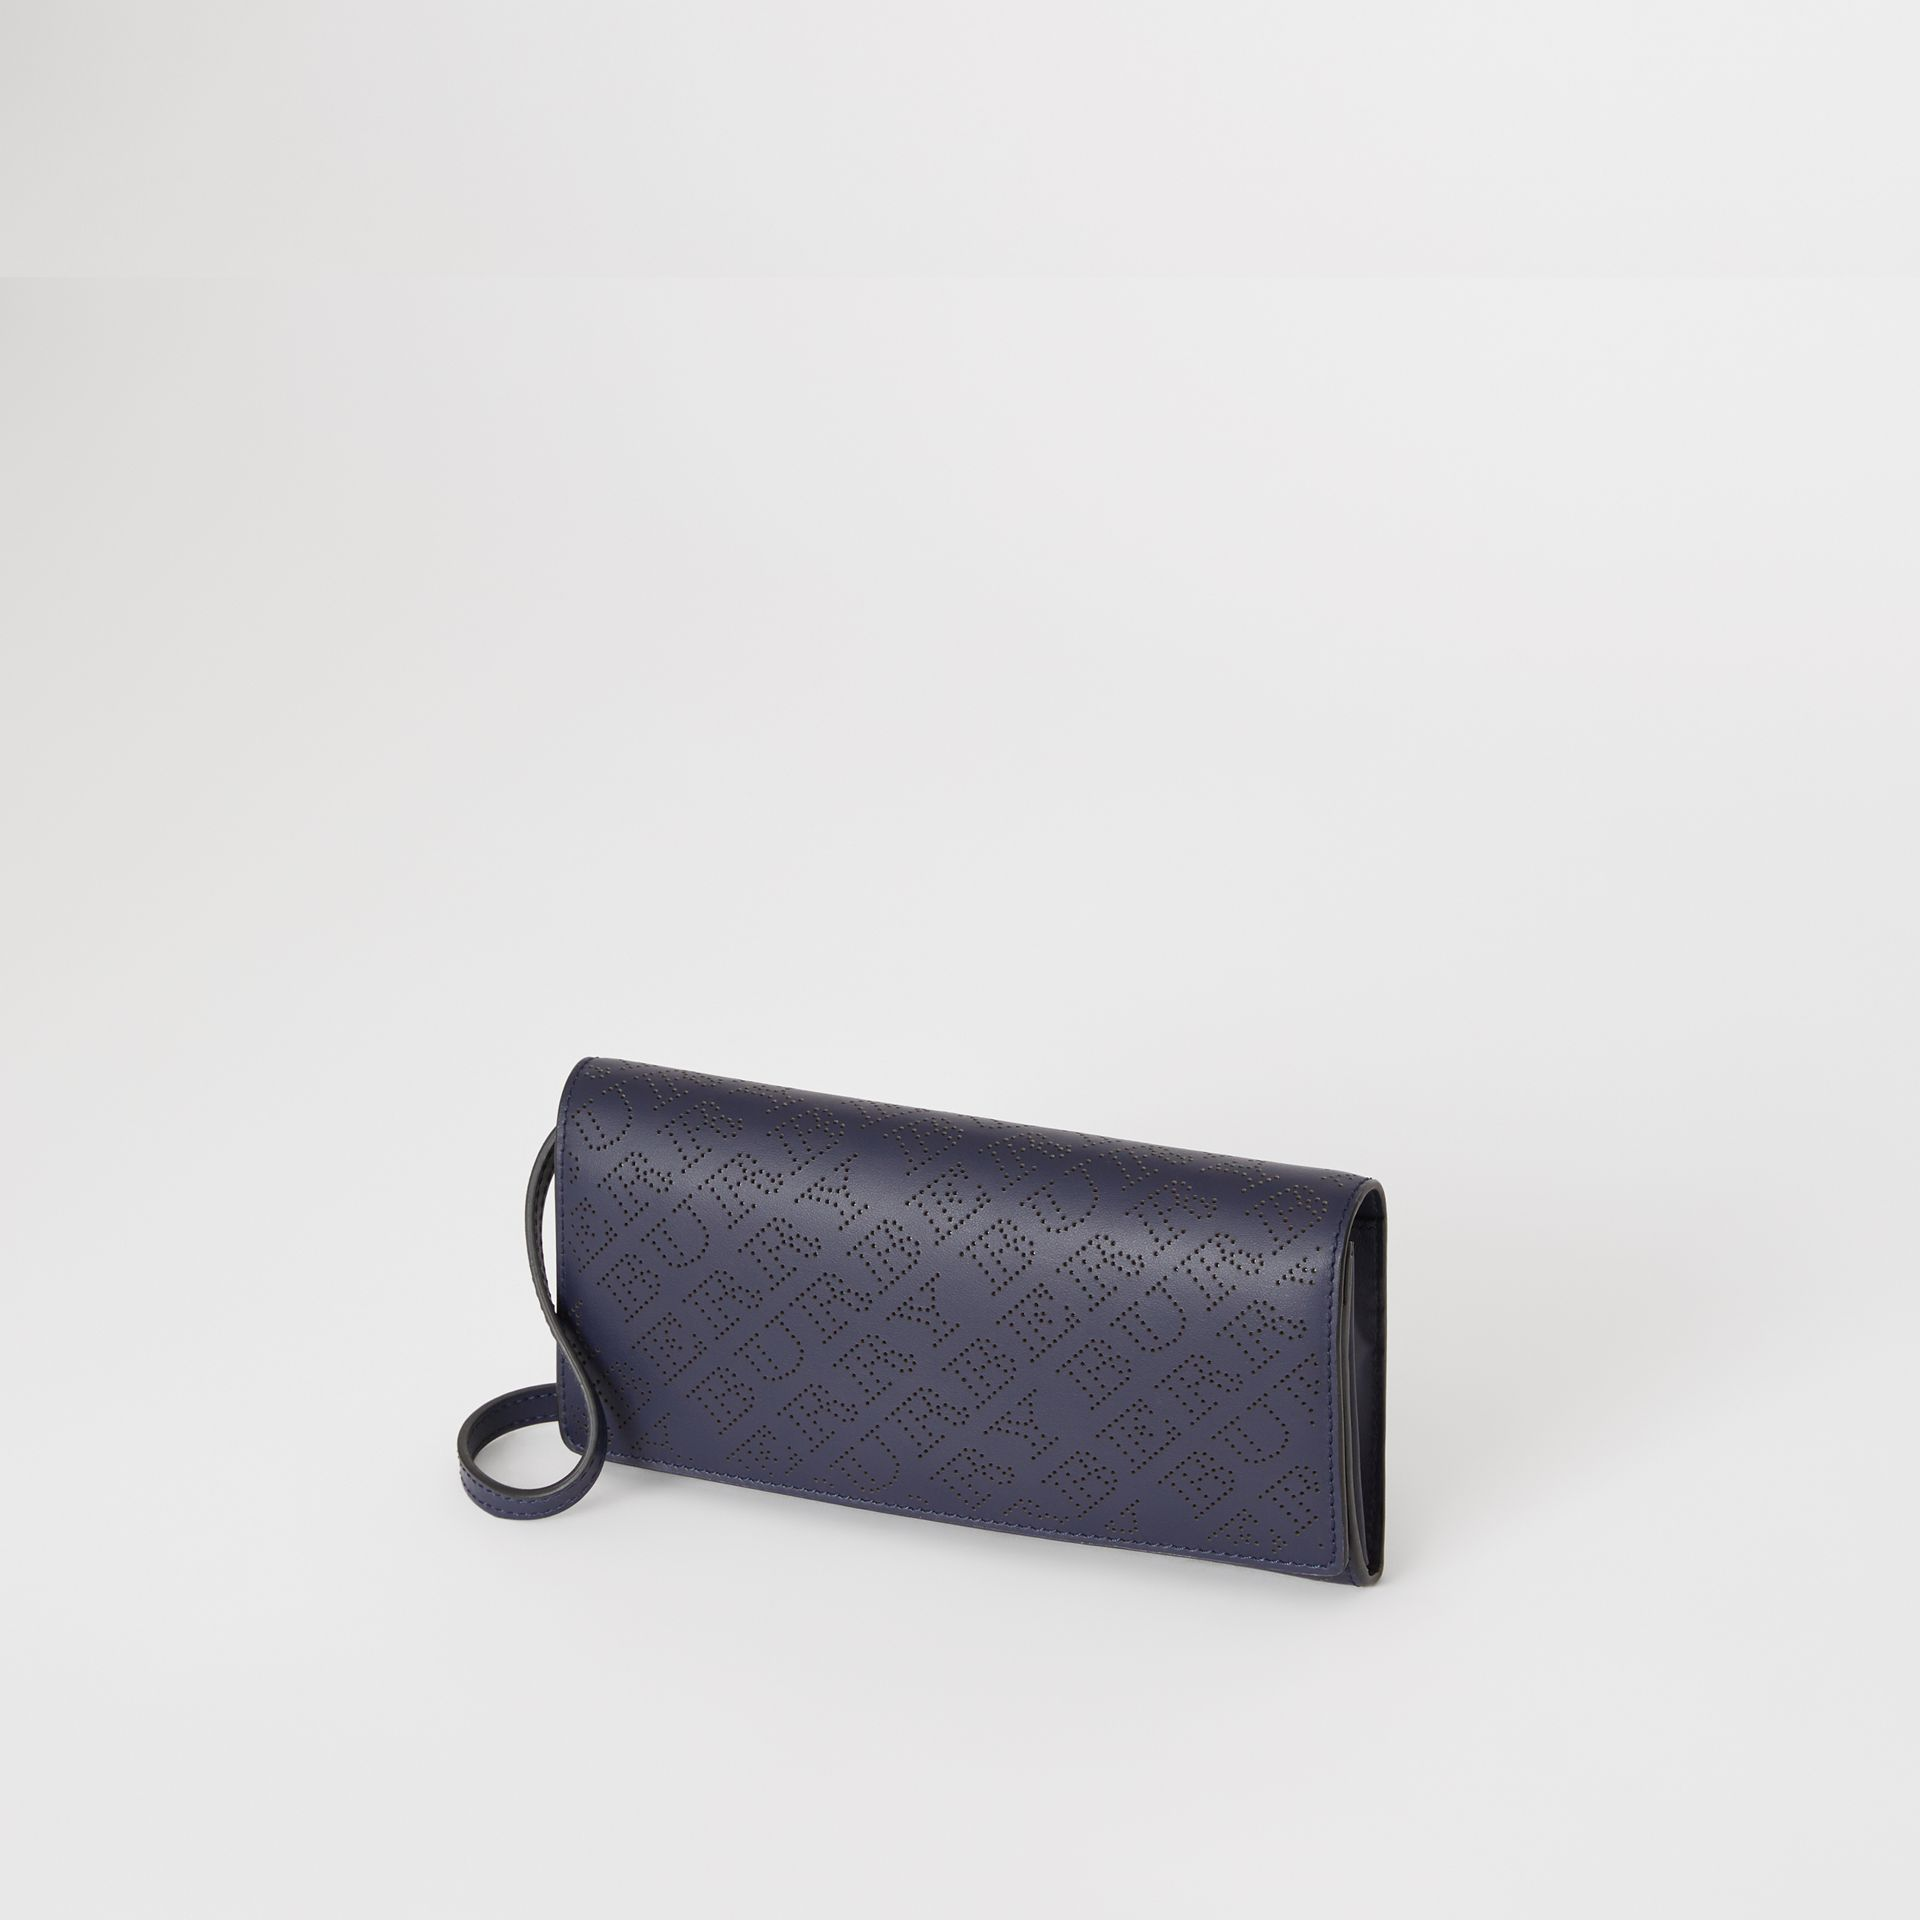 Perforated Logo Leather Wallet with Detachable Strap in Navy - Women | Burberry - gallery image 4